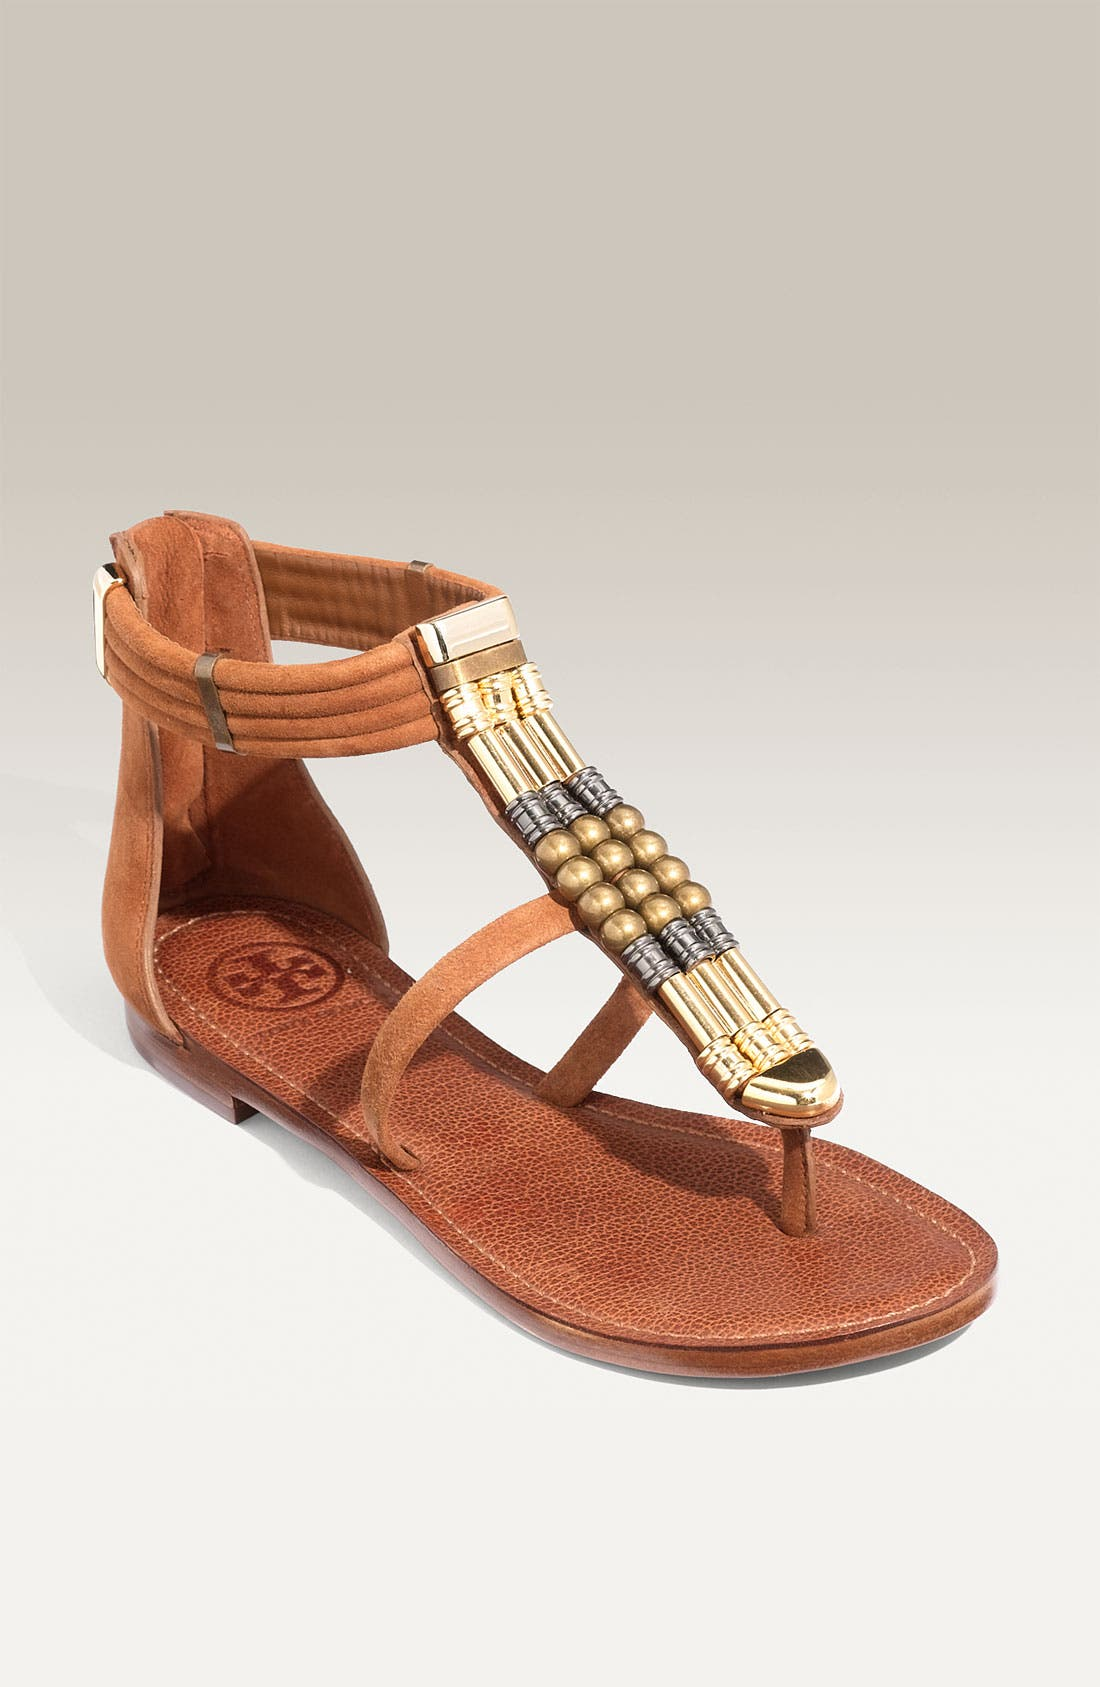 Main Image - Tory Burch 'Jennifer' Beaded Sandal